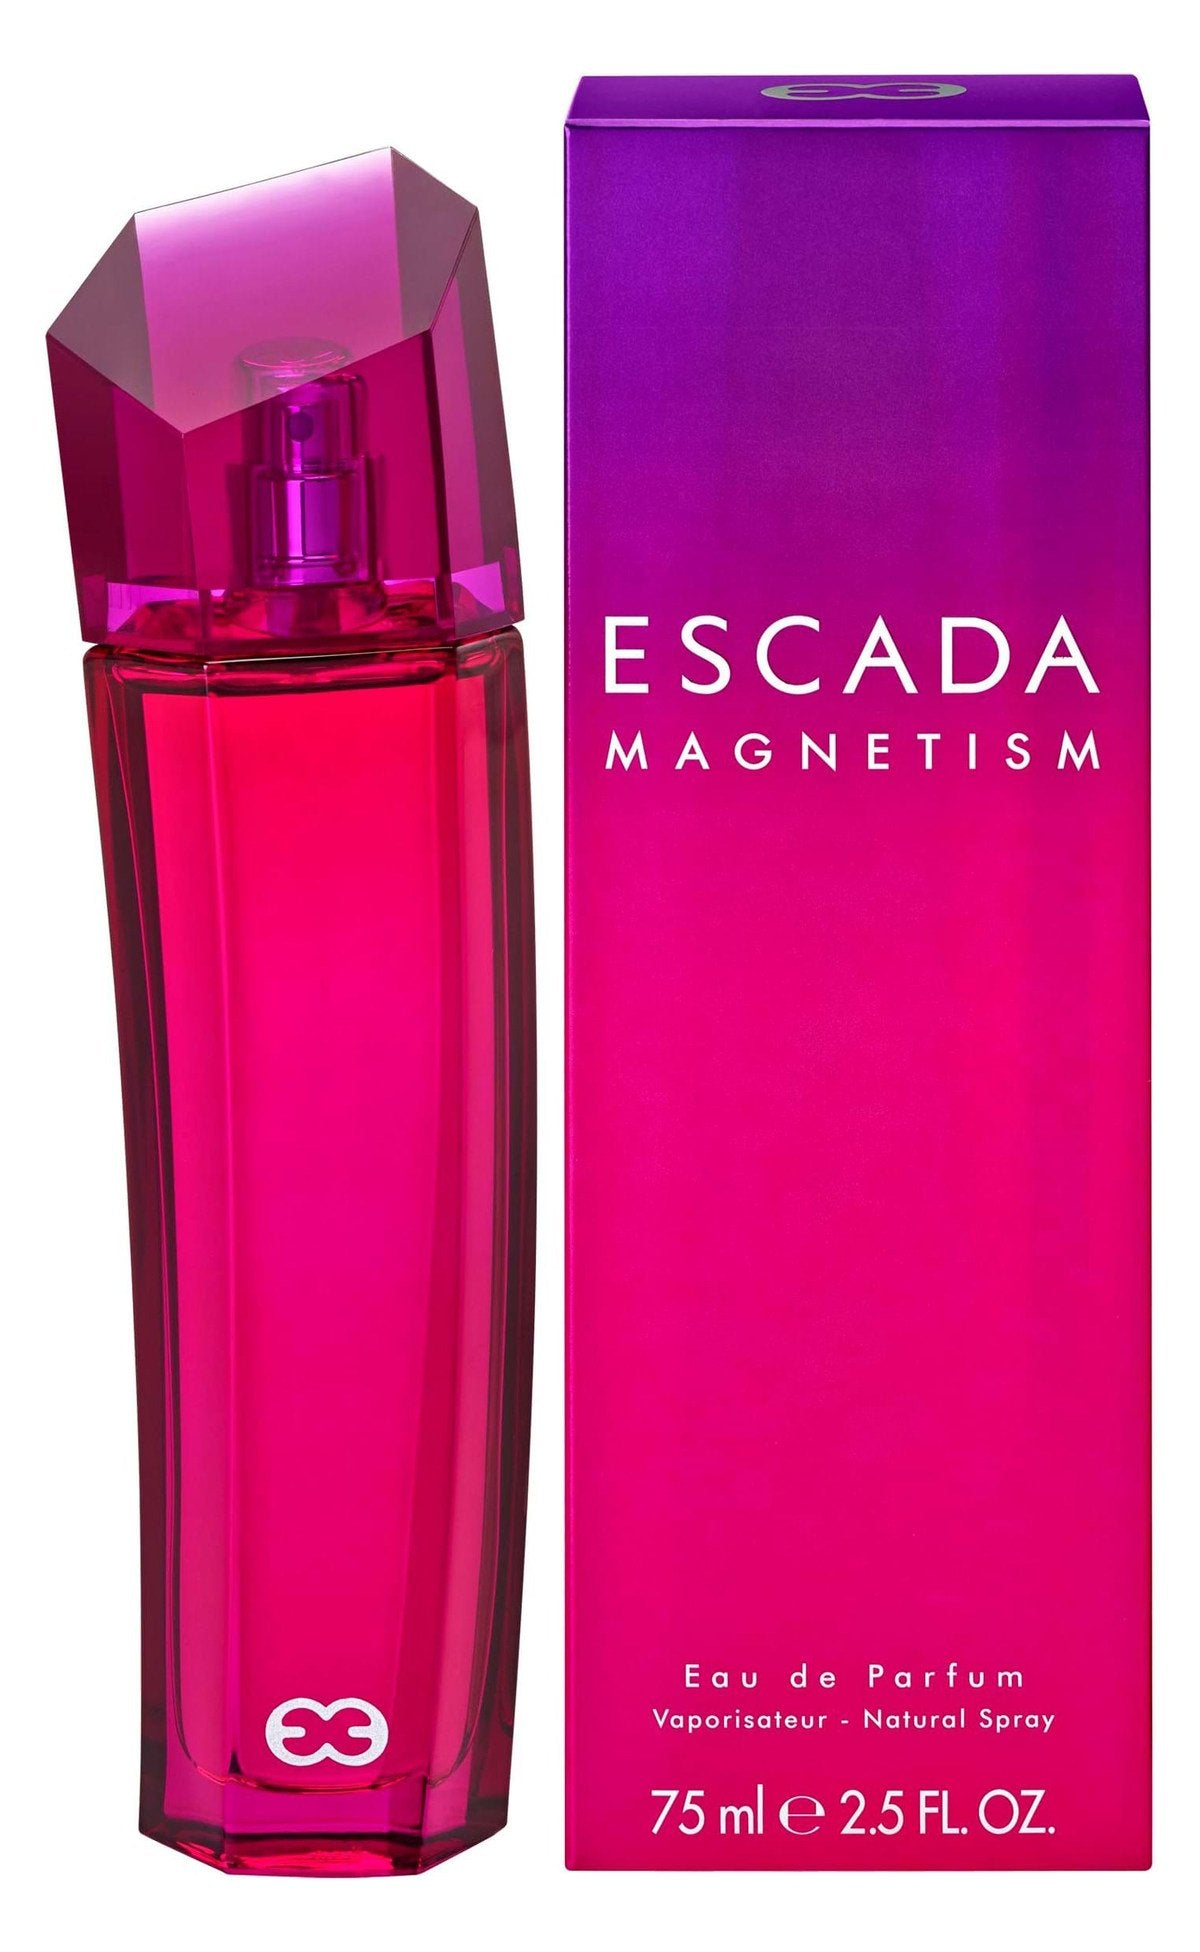 Perfume oil inspired by Escada Magnetism